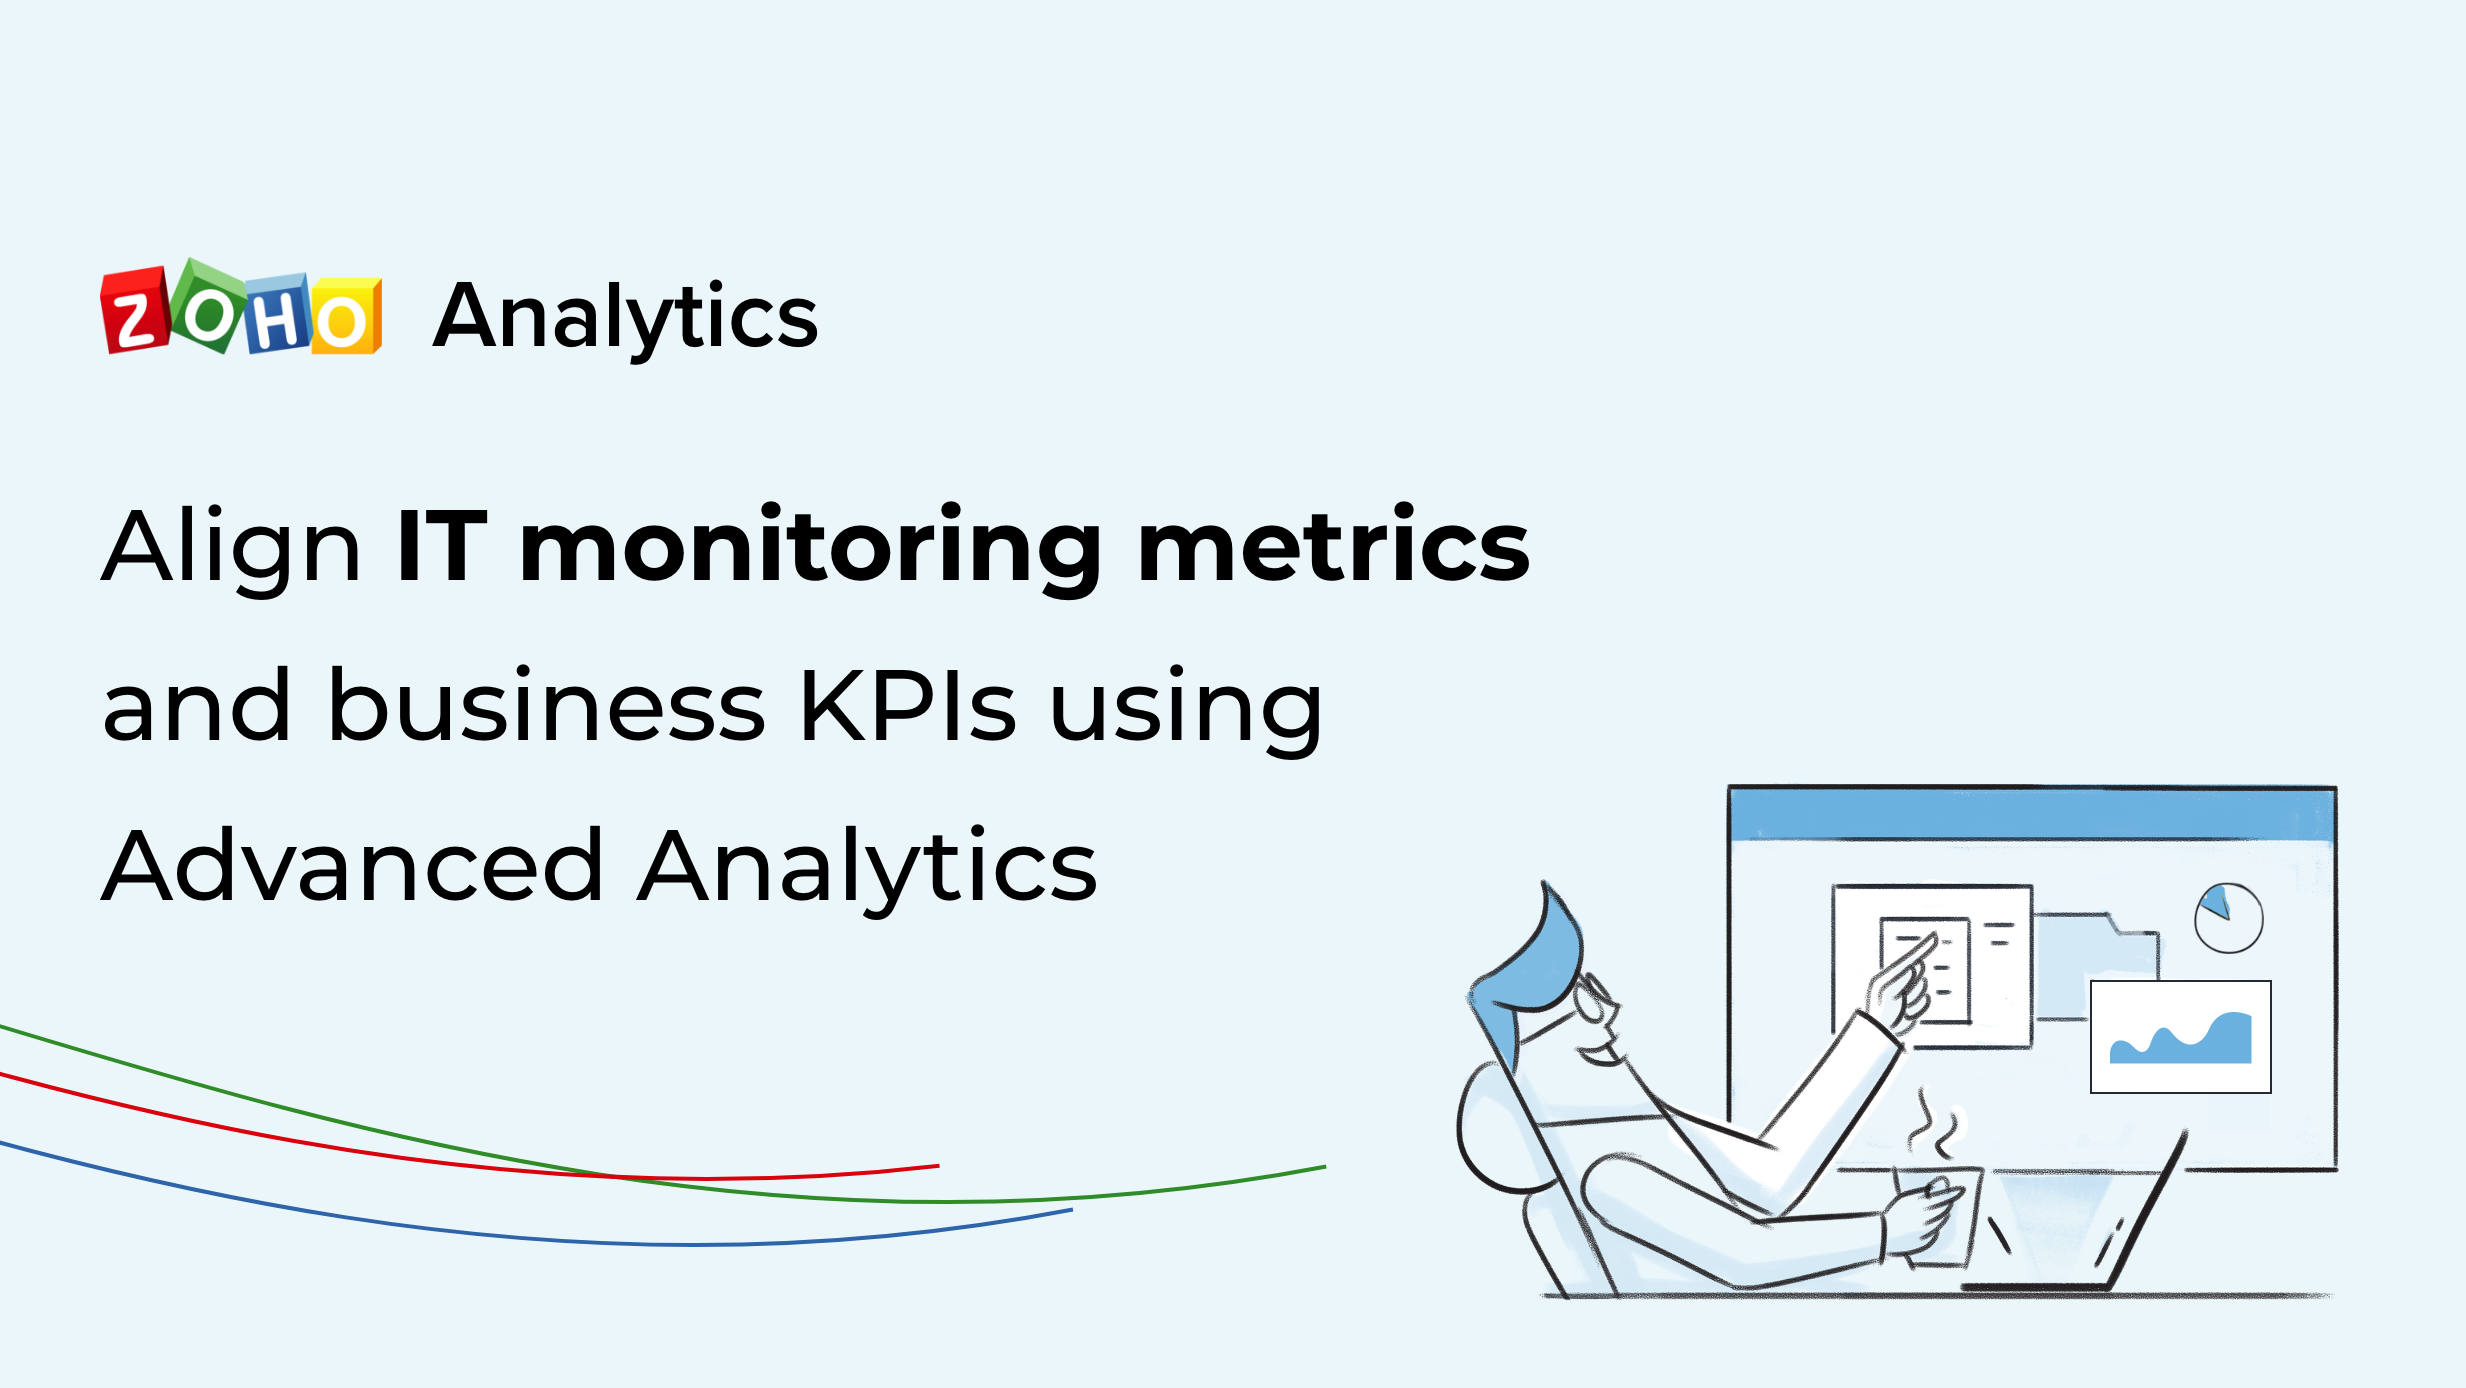 Align IT monitoring metrics and business KPIs using Advanced Analytics